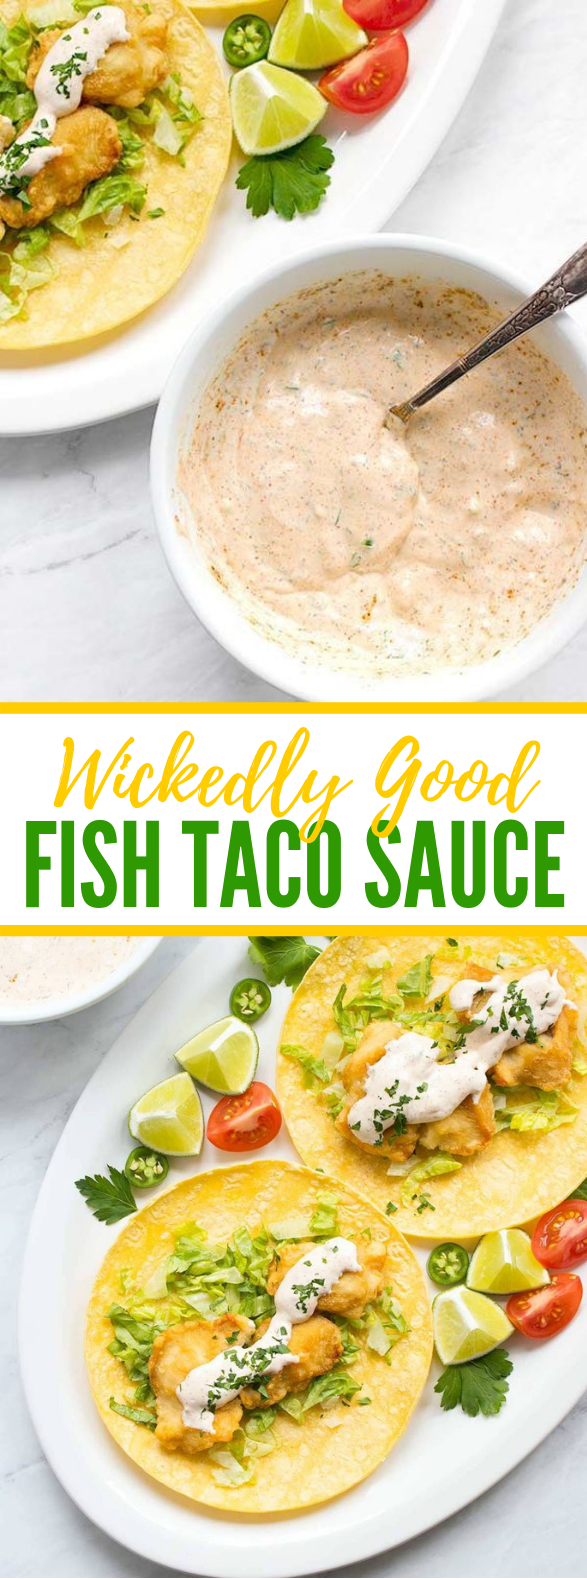 WICKEDLY GOOD FISH TACO SAUCE #dinner #seafood